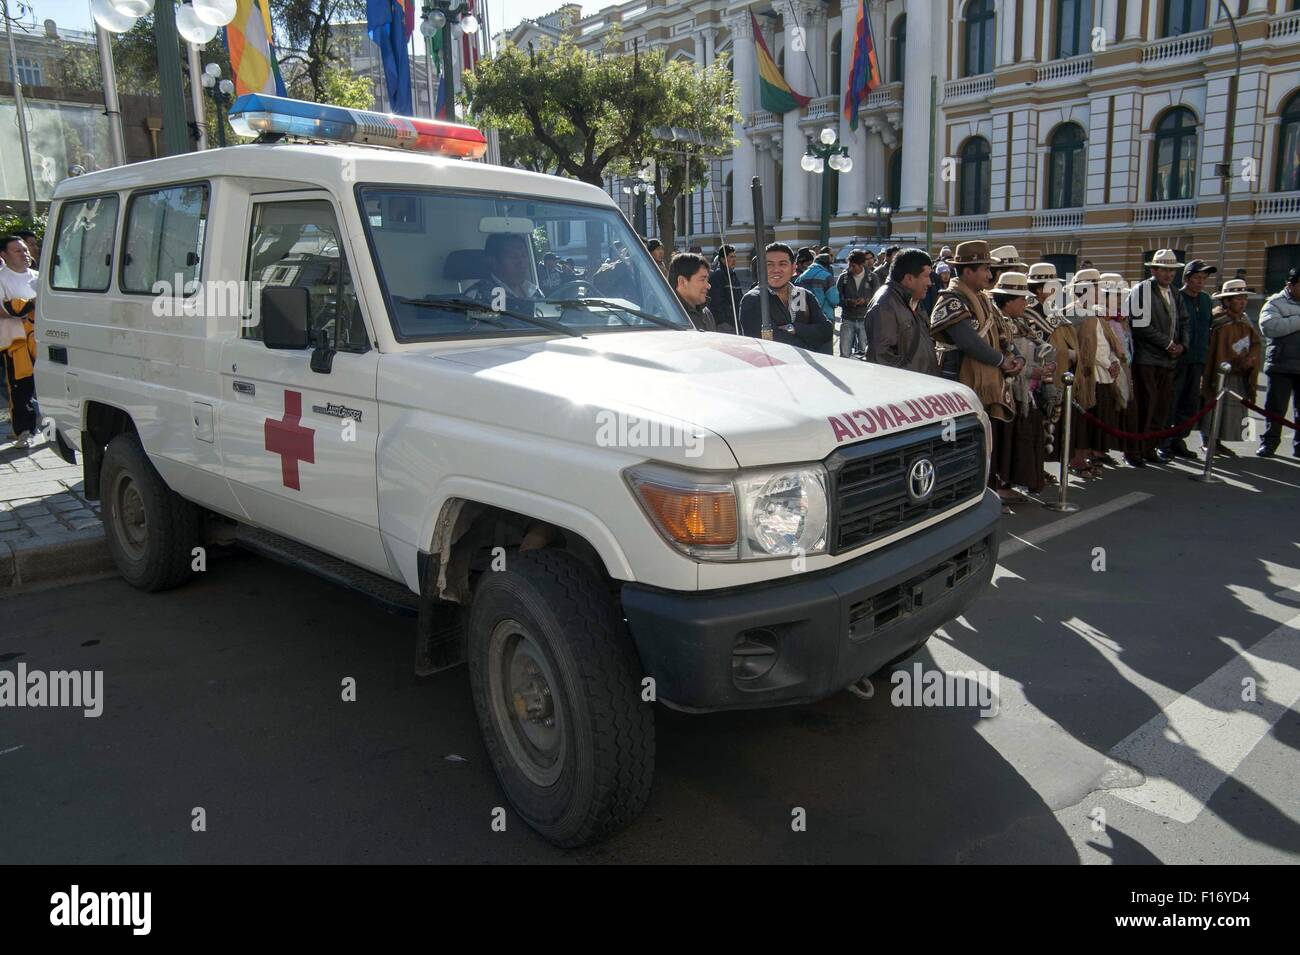 La Paz, Bolivia. 28th Aug, 2015. People attend the handover ceremony of an ambulance for the community of Cosapa - Stock Image